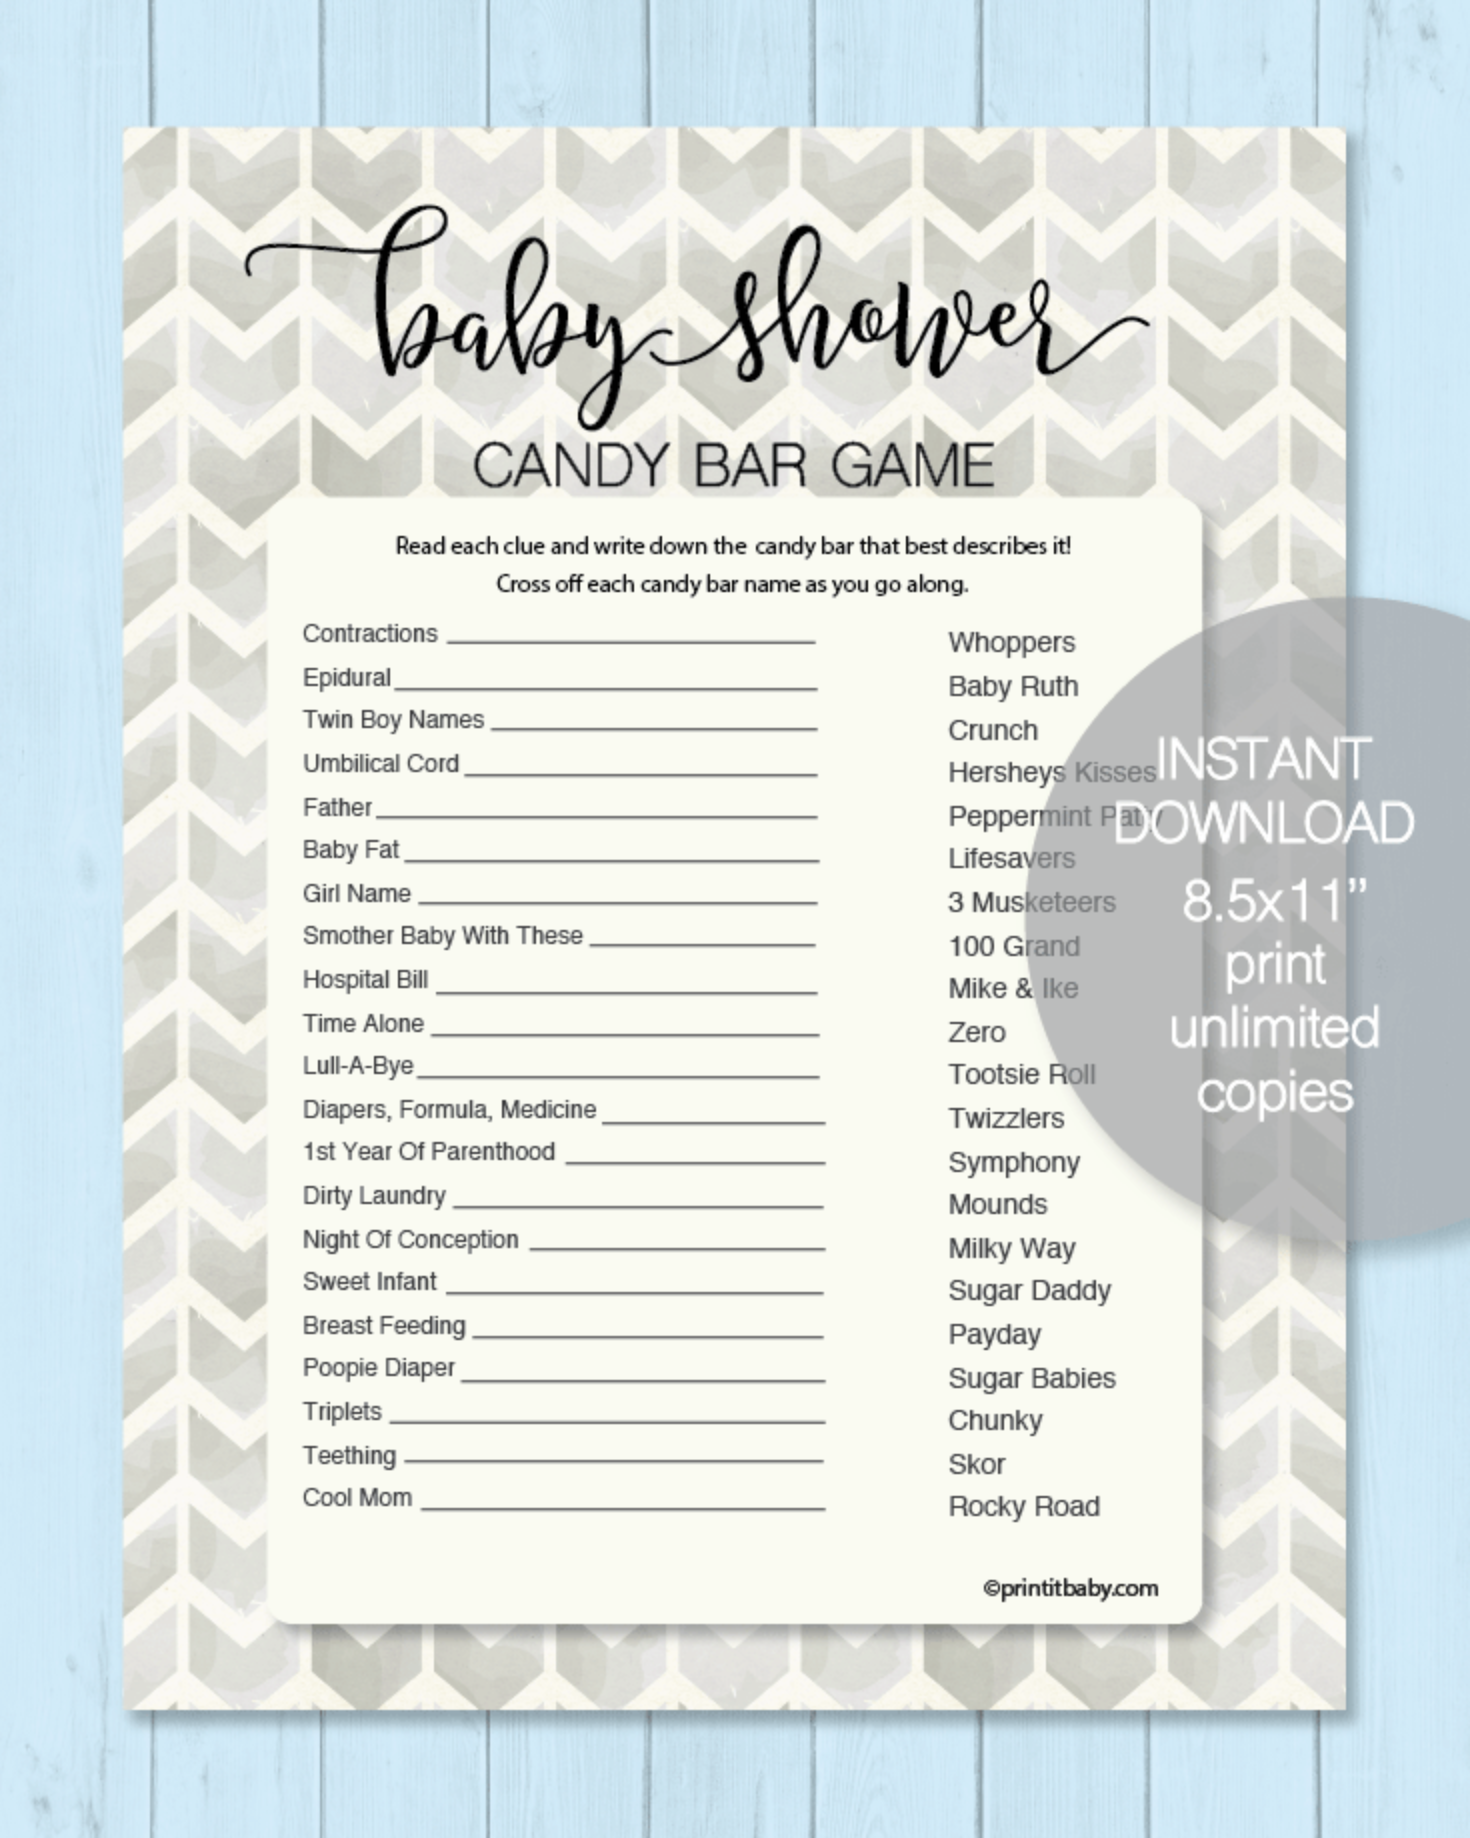 Printable Baby Shower Candy Bar Game - Gray Chevron Arrows - Boho Watercolor